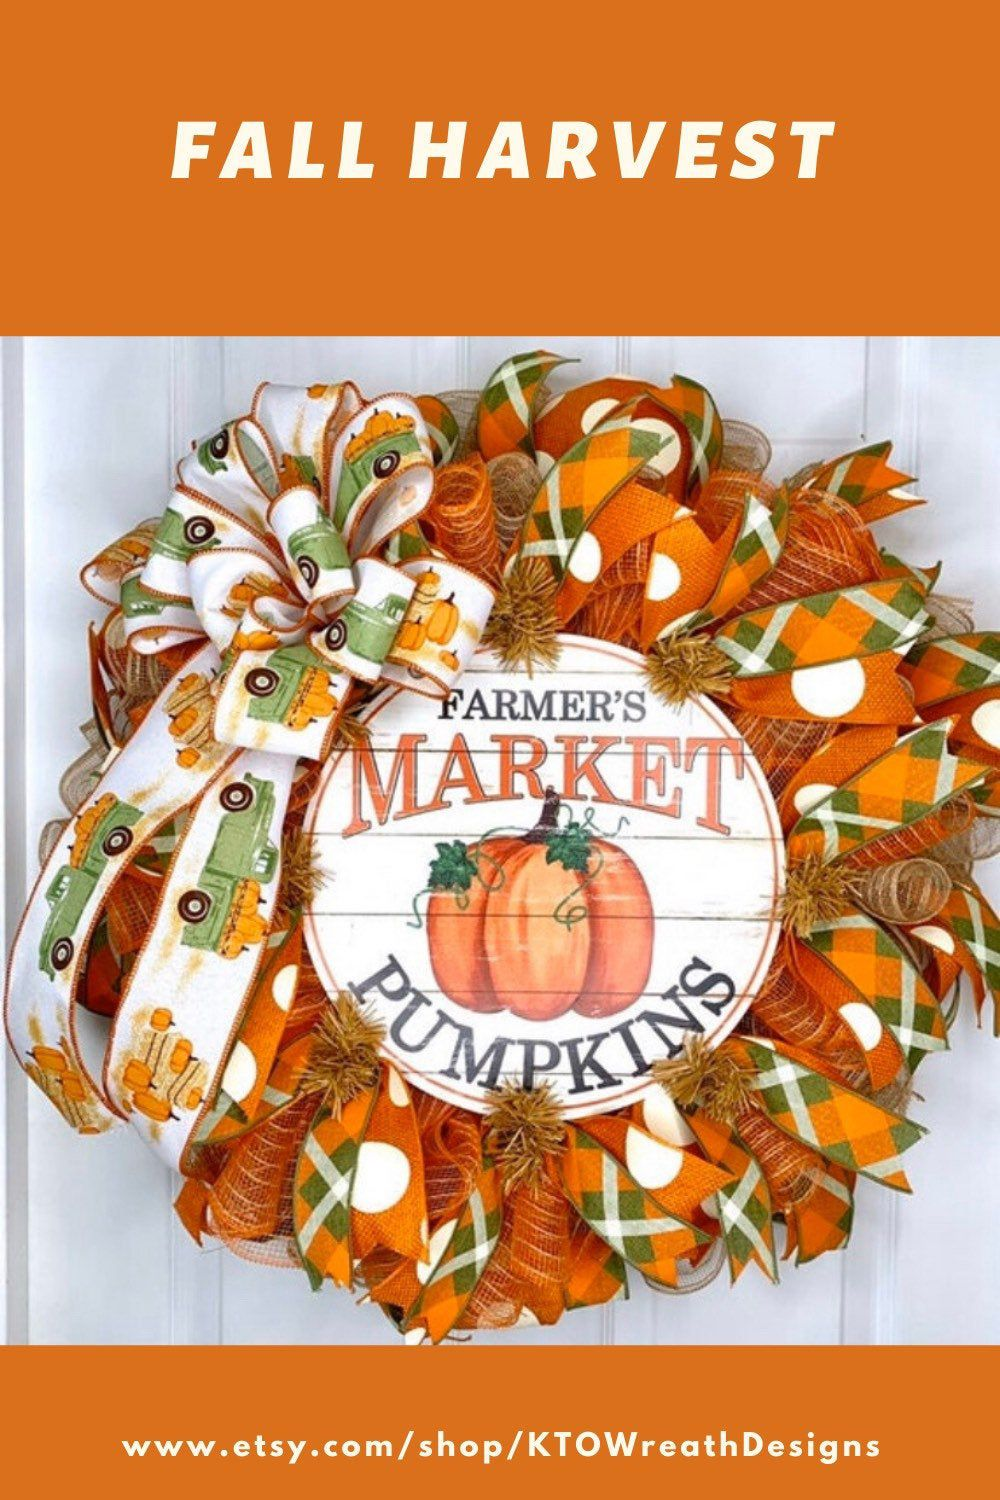 Farmers Market Pumpkin Wreath, Pumpkin Door Hanger, Fall Door Decor, Pumpkin Wreath, Green Truck Pumpkin Wreath